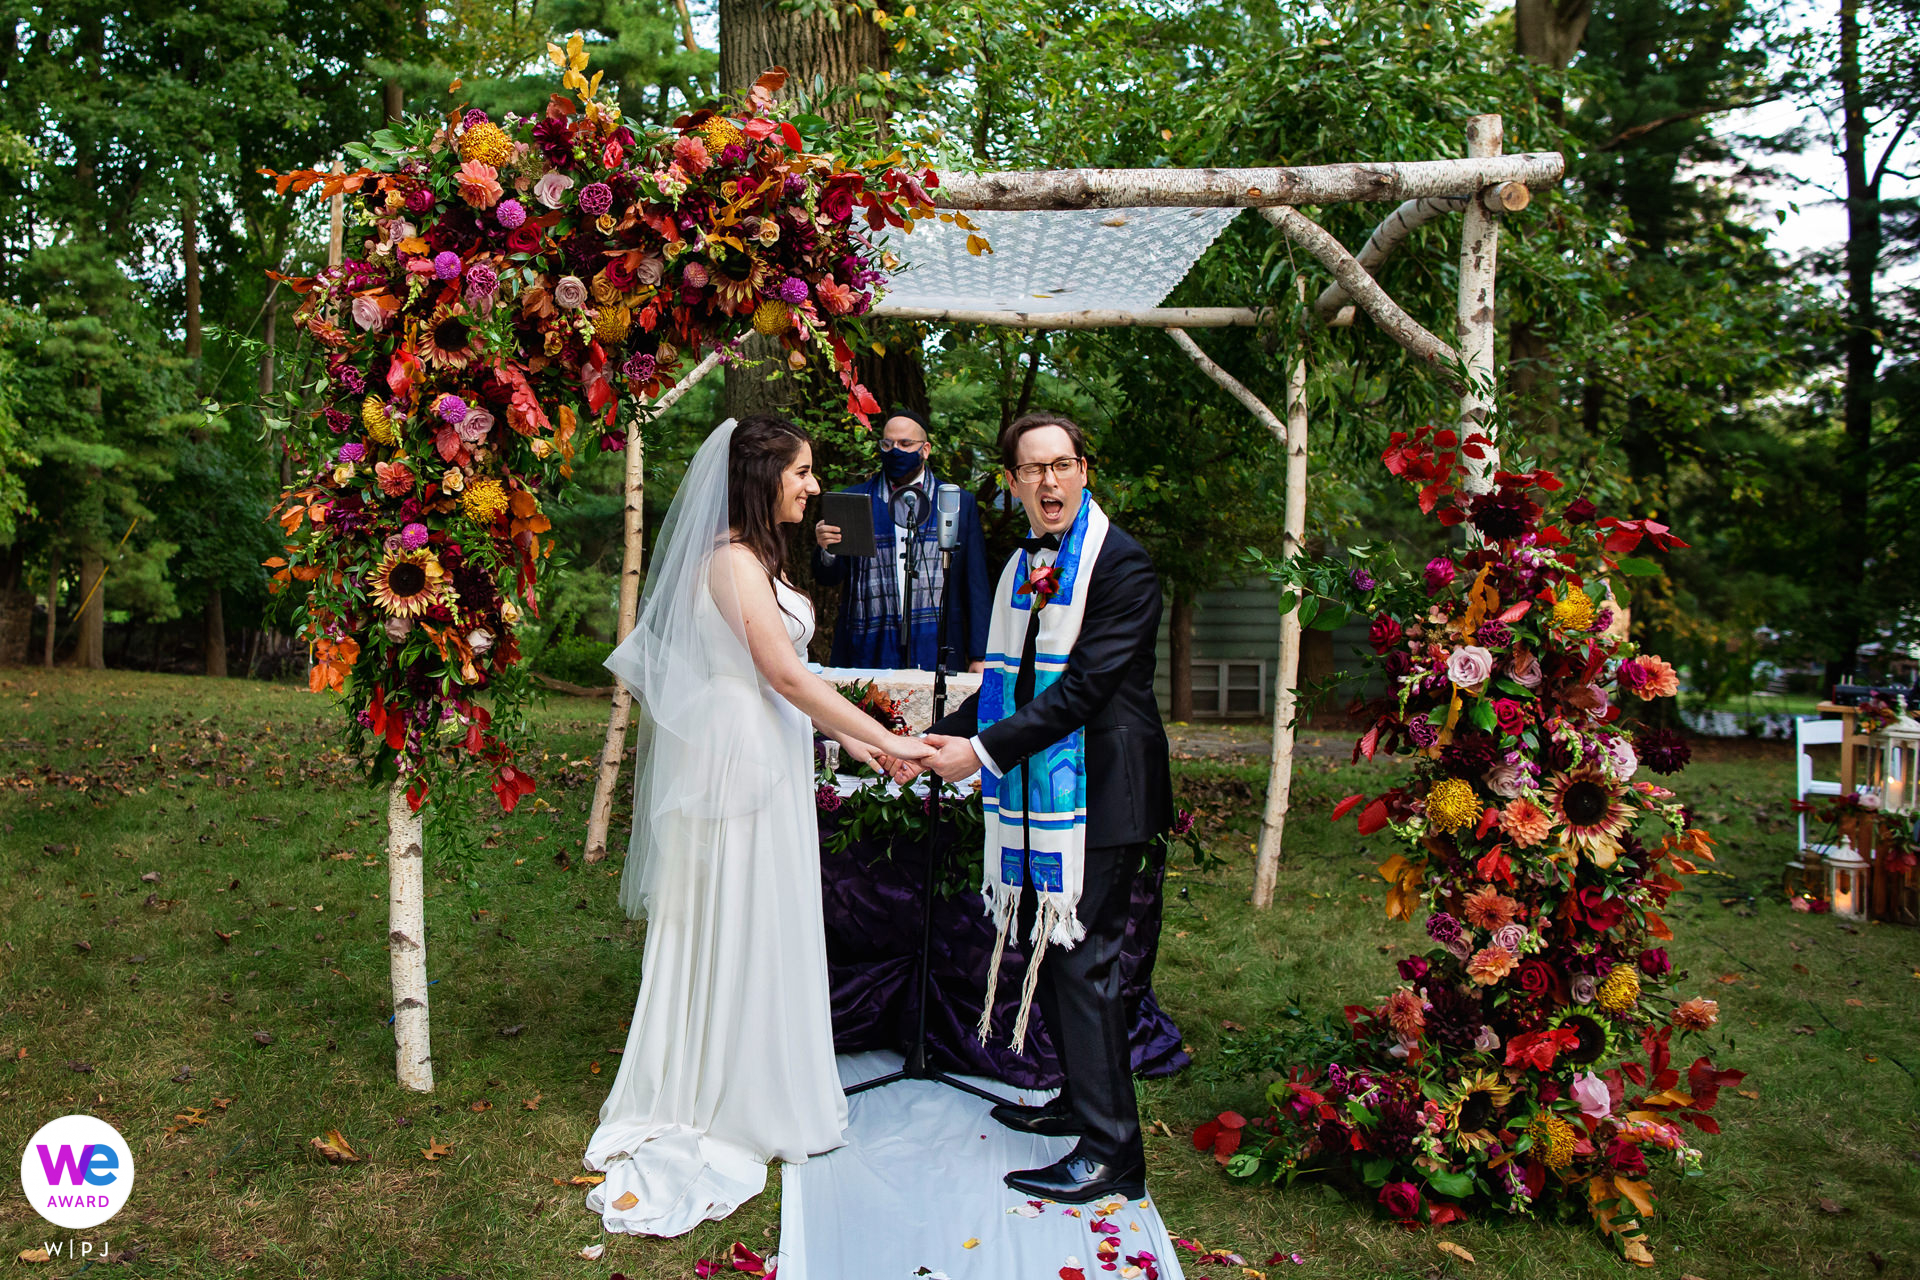 Montclair, New Jersey Outdoor Backyard Garden Wedding Photo created as The groom winks at the live stream camera for the guests at home